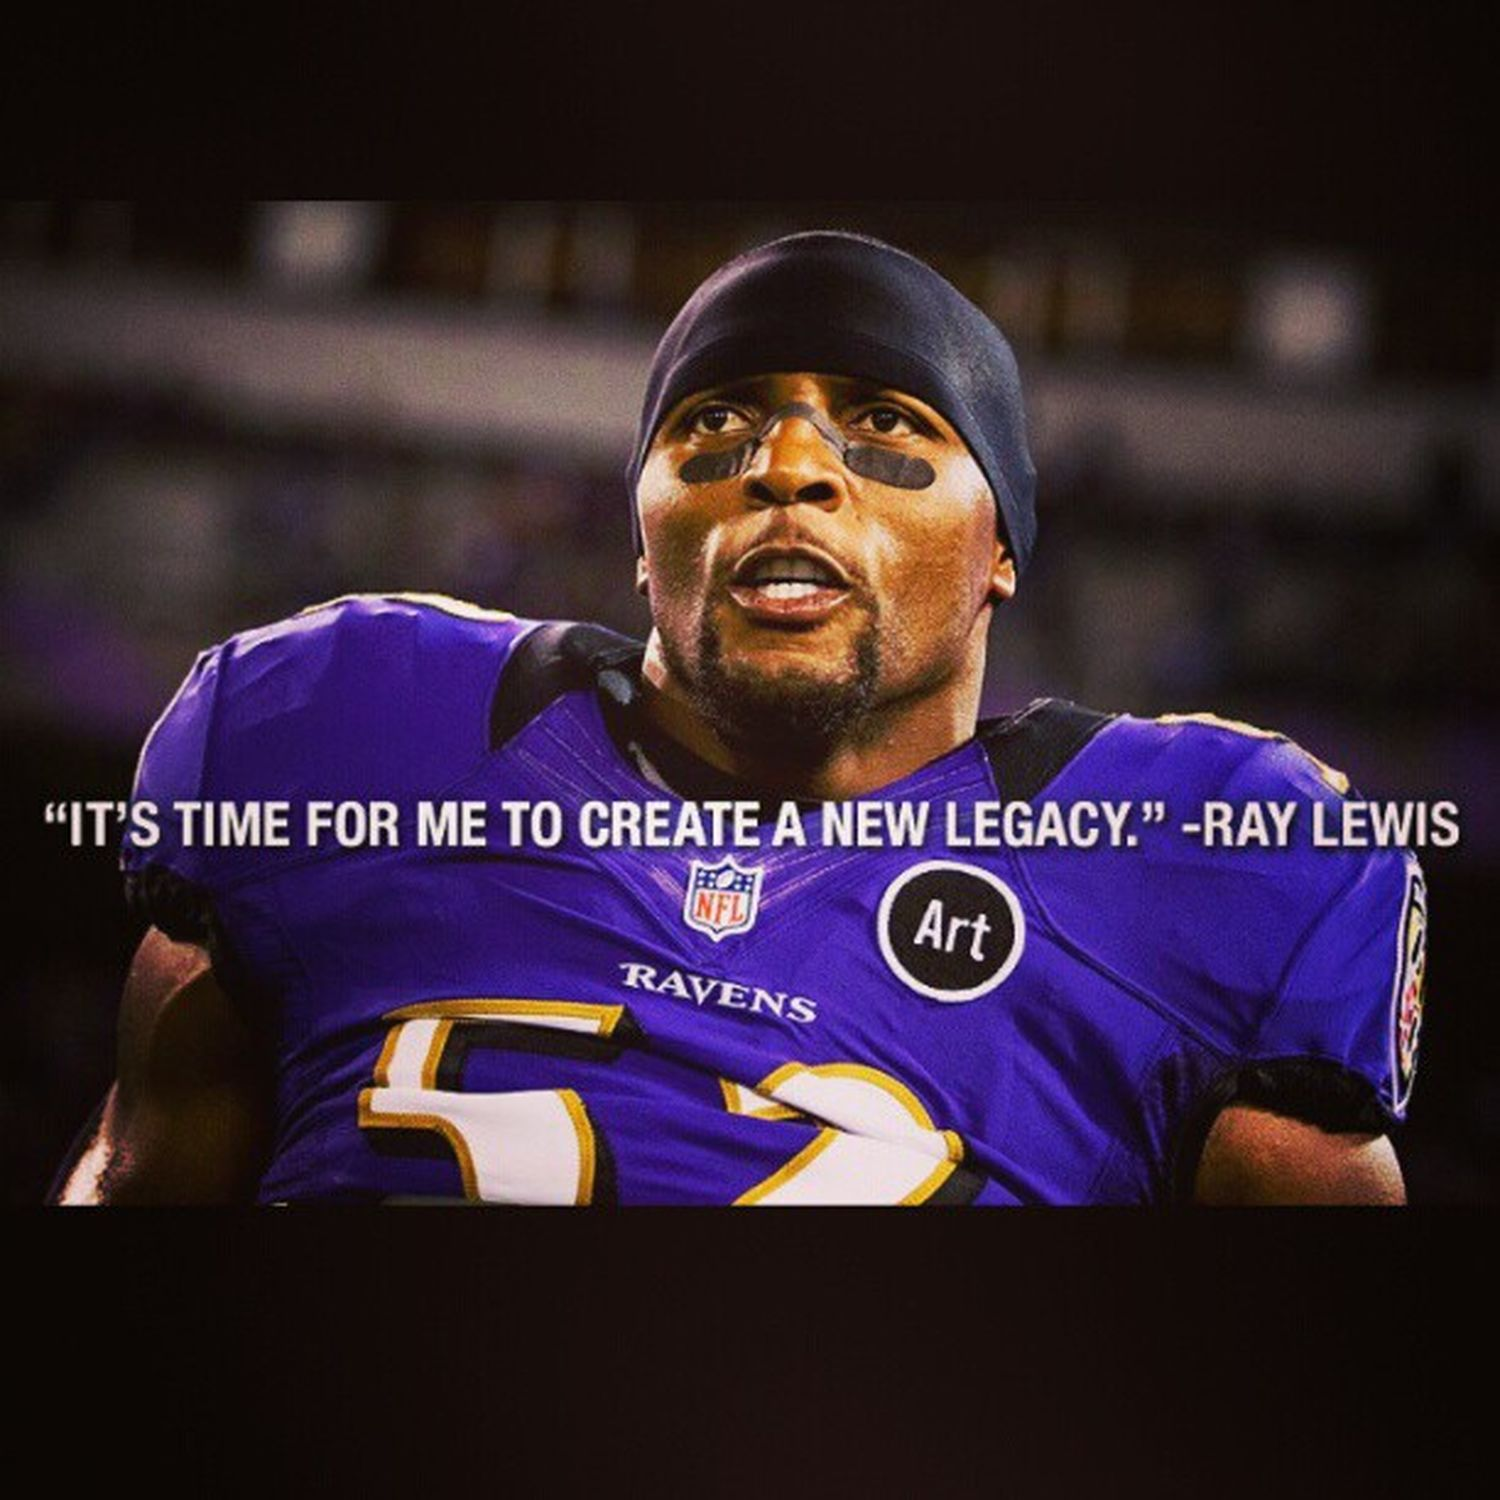 Ray Lewis announced his retirement today. He is truly an inspiration. Ravens RayLewis Greatestlinebacker Ofalltime halloffamer